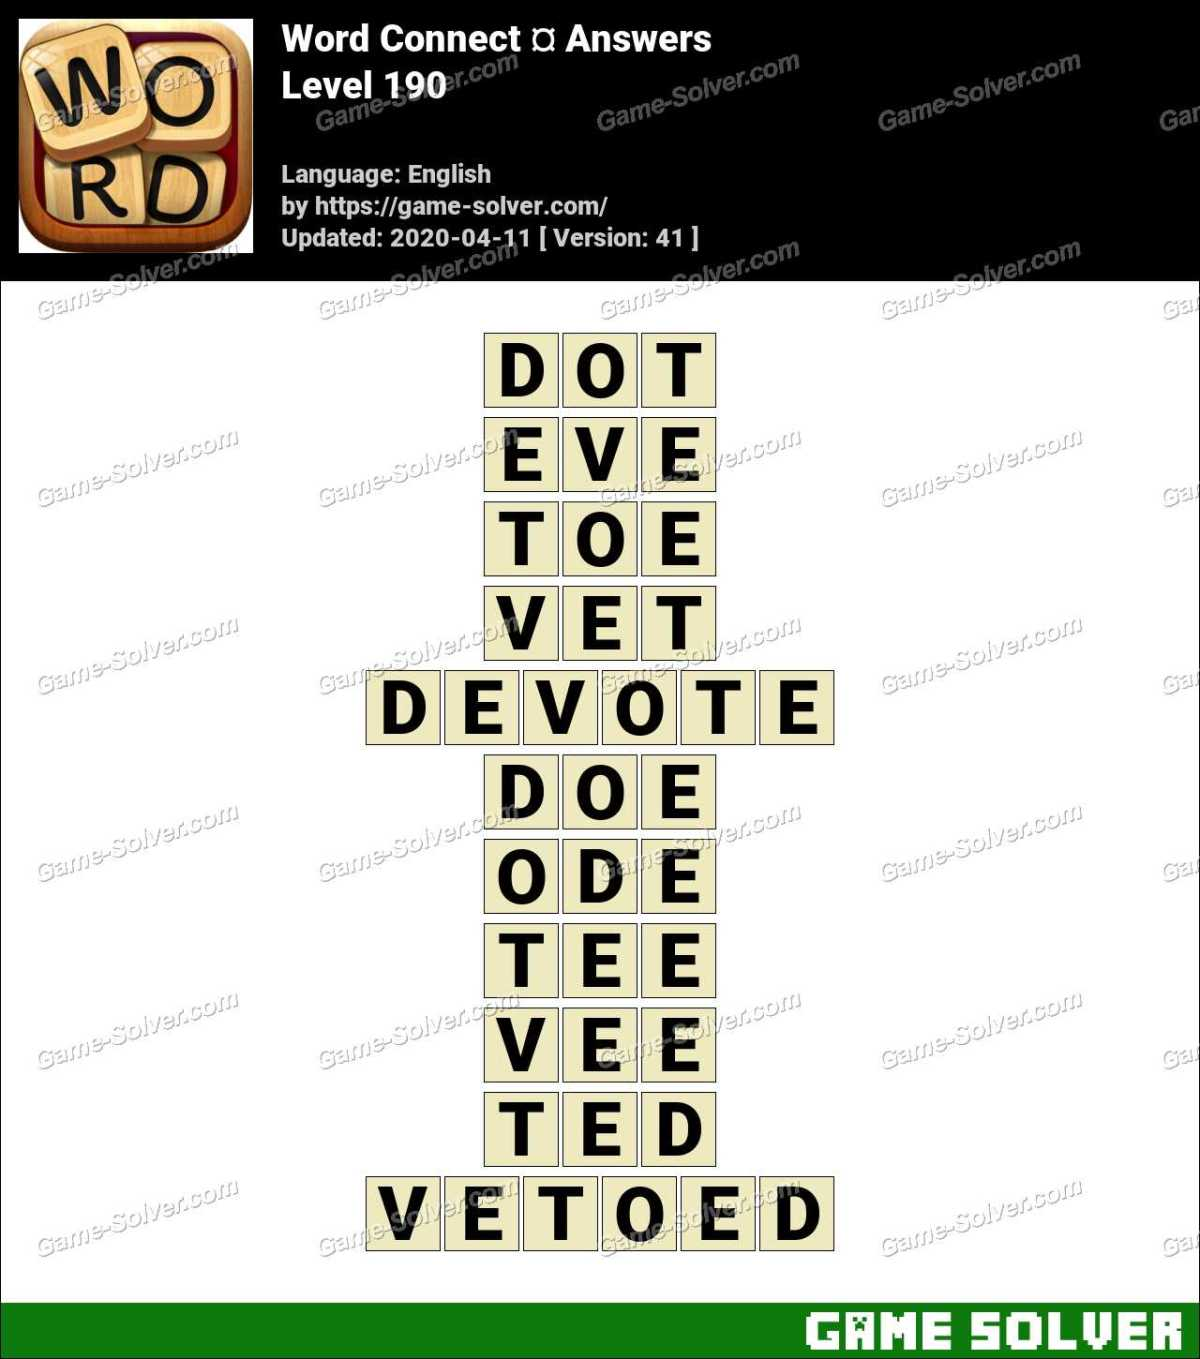 Word Connect Level 190 Answers